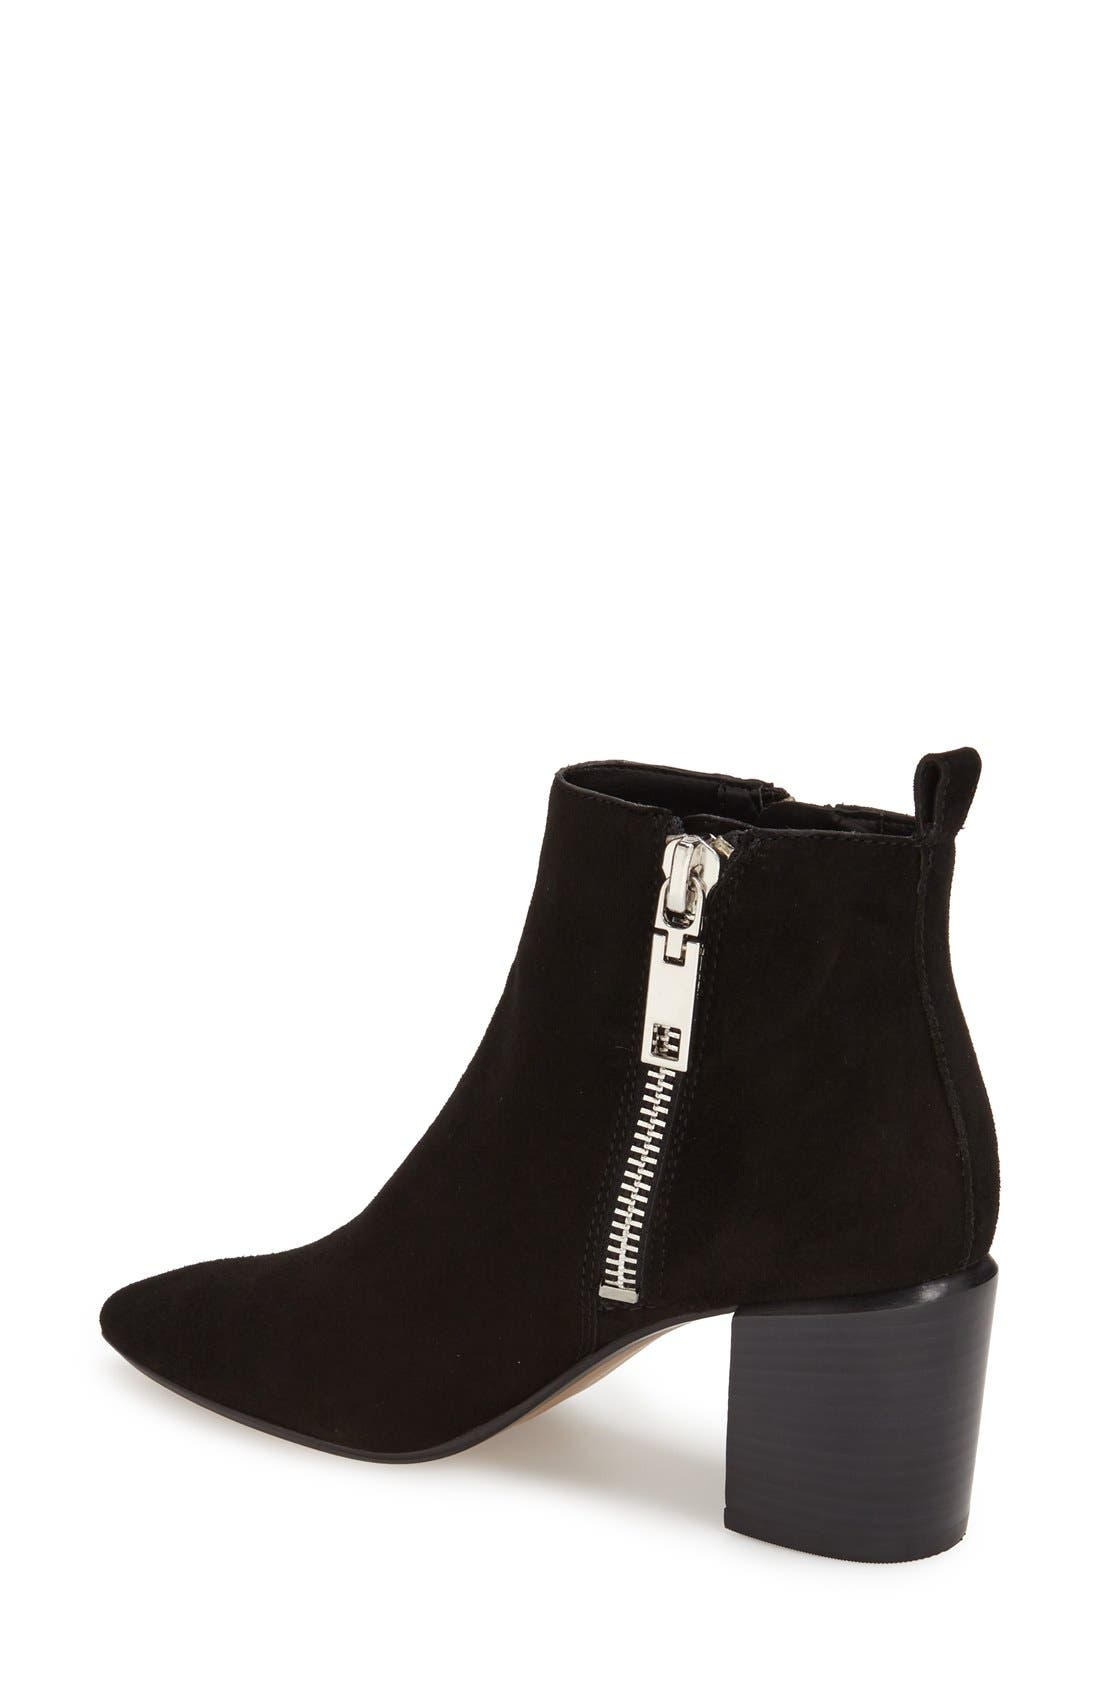 Alternate Image 2  - Dolce Vita 'Ginnee' Pointy Toe Ankle Bootie (Women)